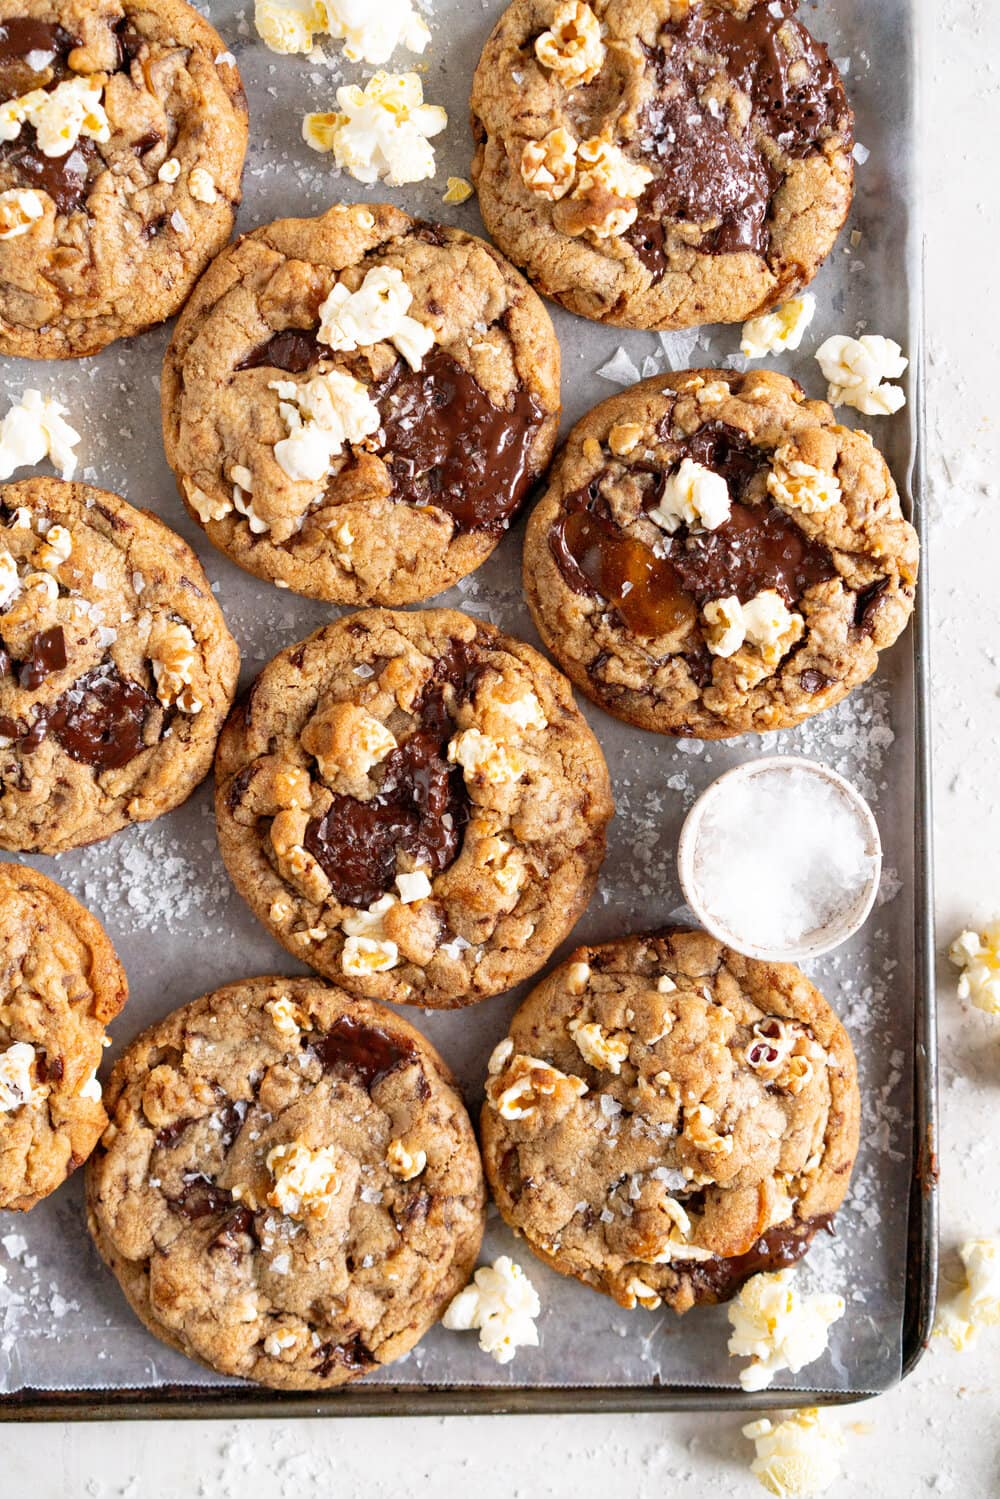 Brown Butter Salted Caramel Popcorn Chocolate Chip Cookies. Sweet, Salty chocolate chip cookies are filled with salted caramel chunks and freshly popped popcorn, then baked until perfectly round and crunchy. These are super simple to make and have the most beautiful chocolate puddles on top.